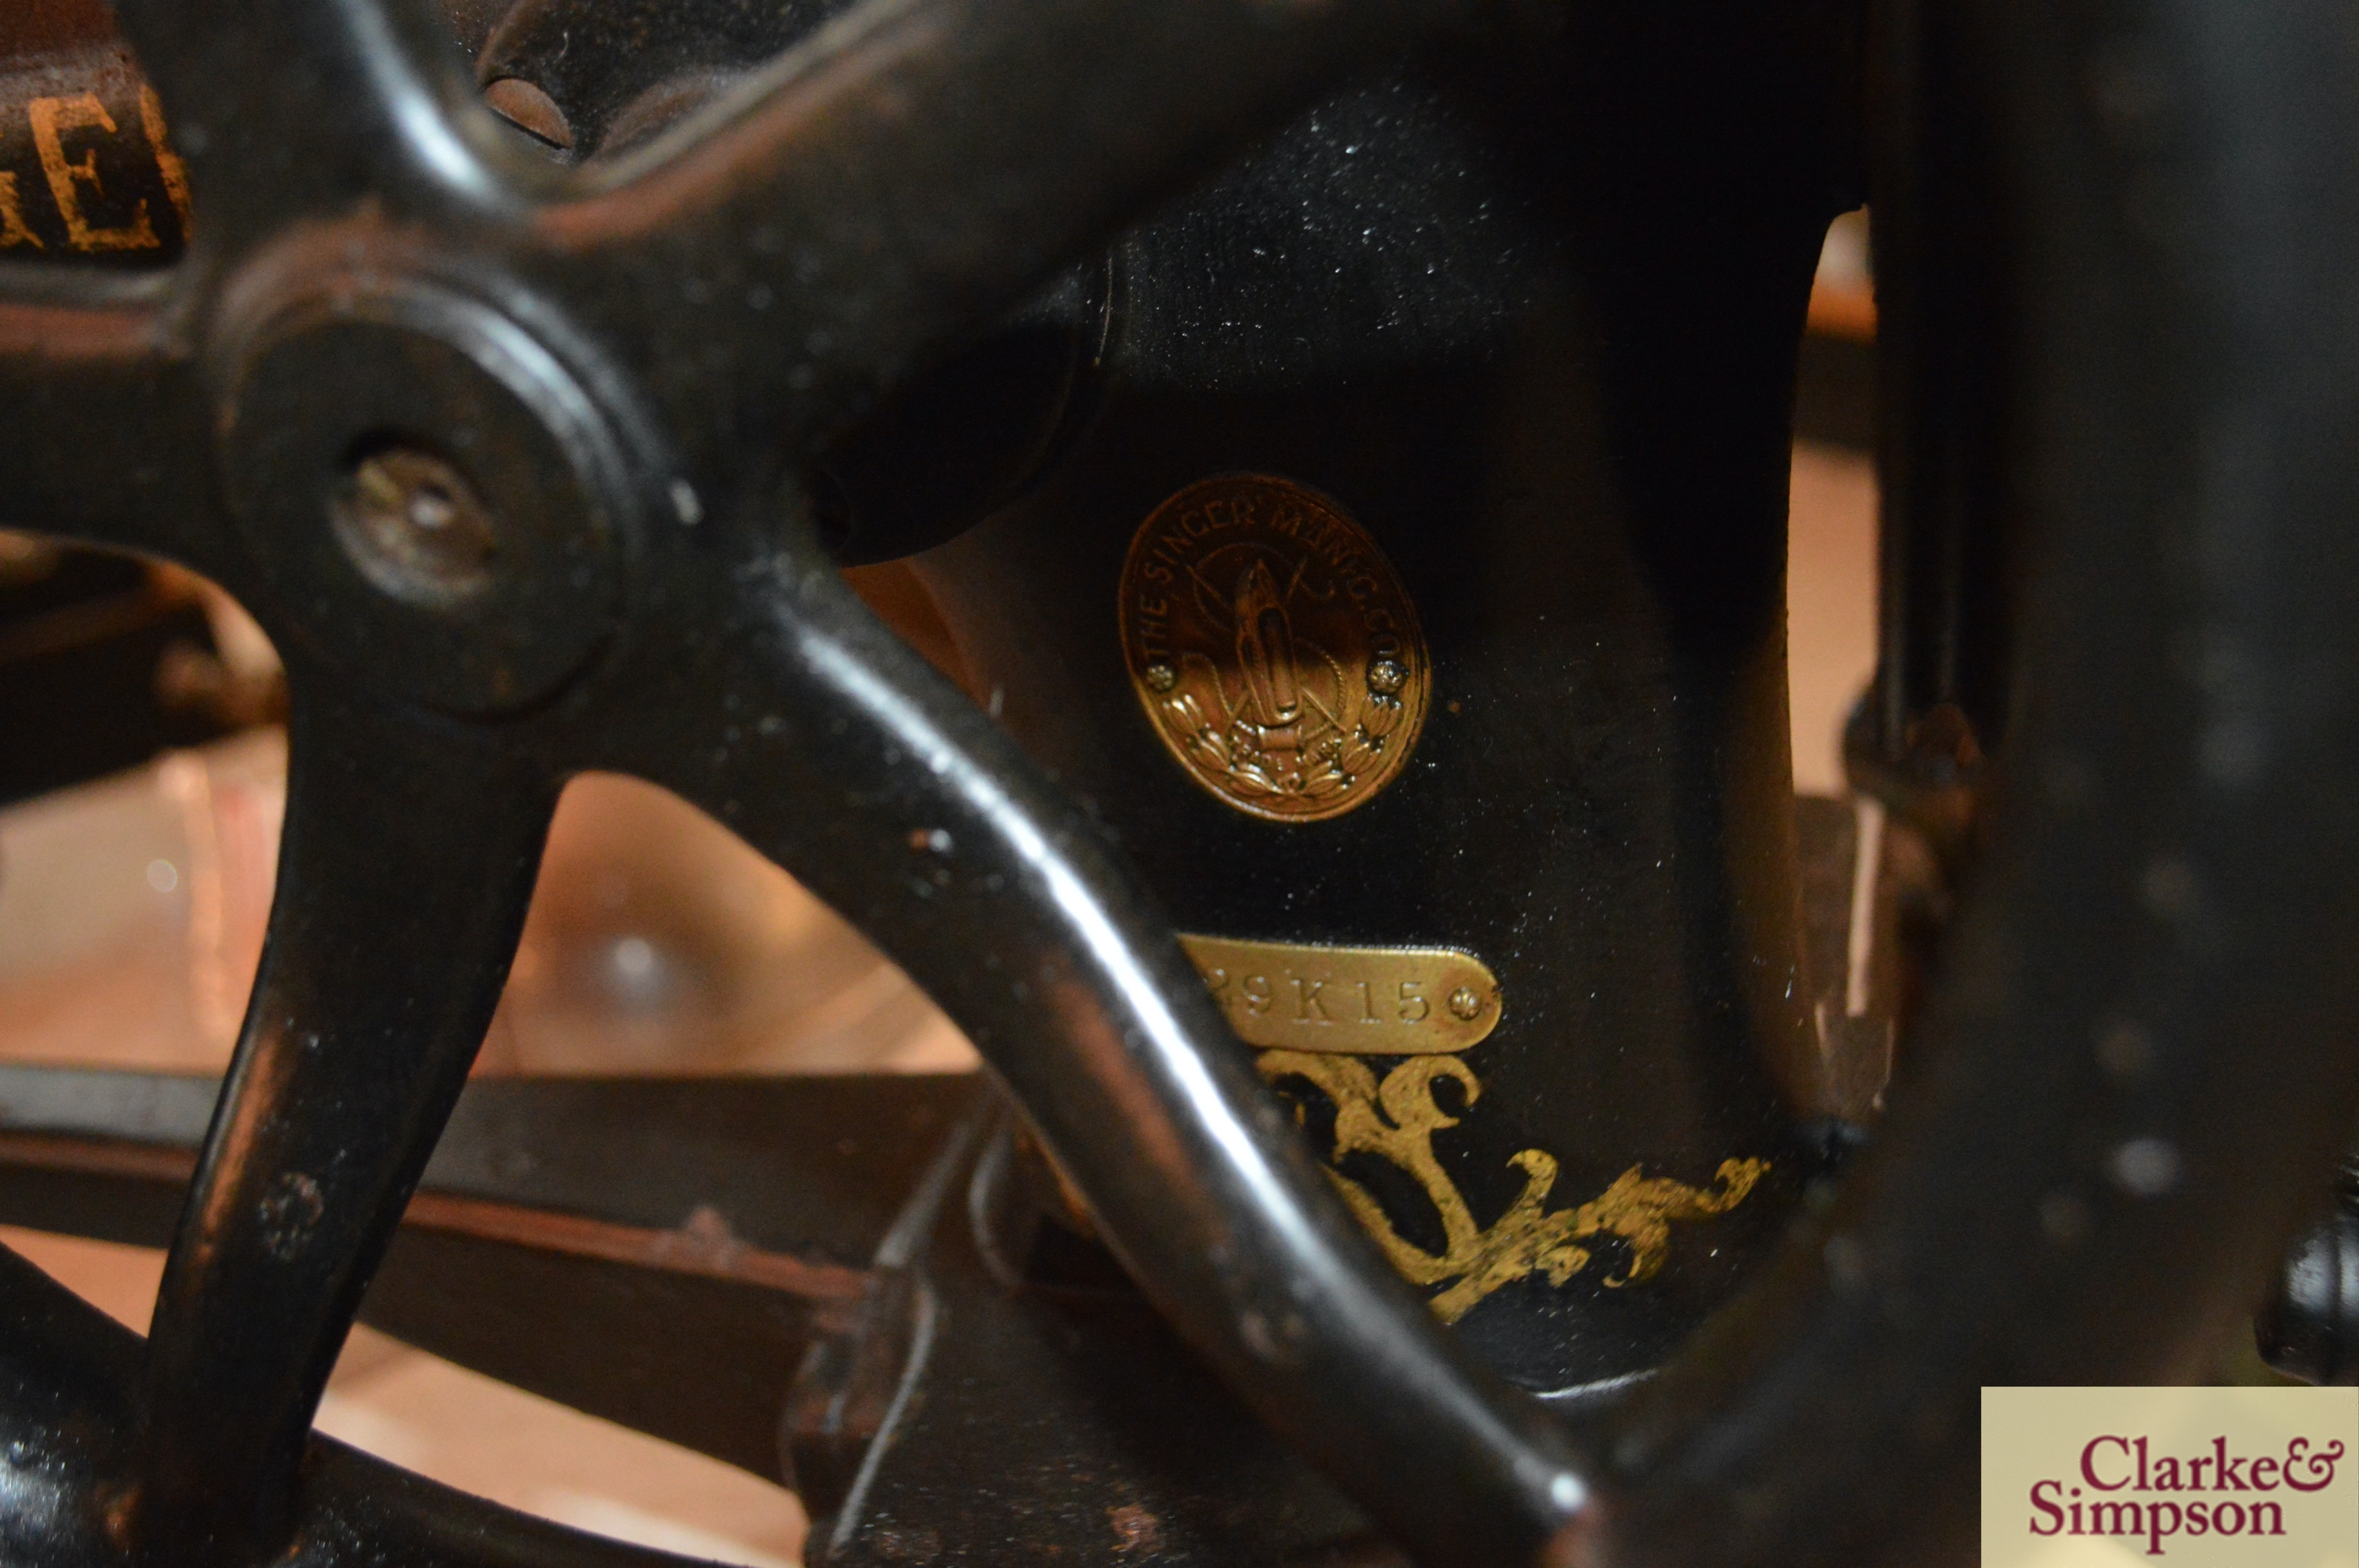 A Singer No.29K15 heavy duty patcher hand or belt - Image 6 of 9